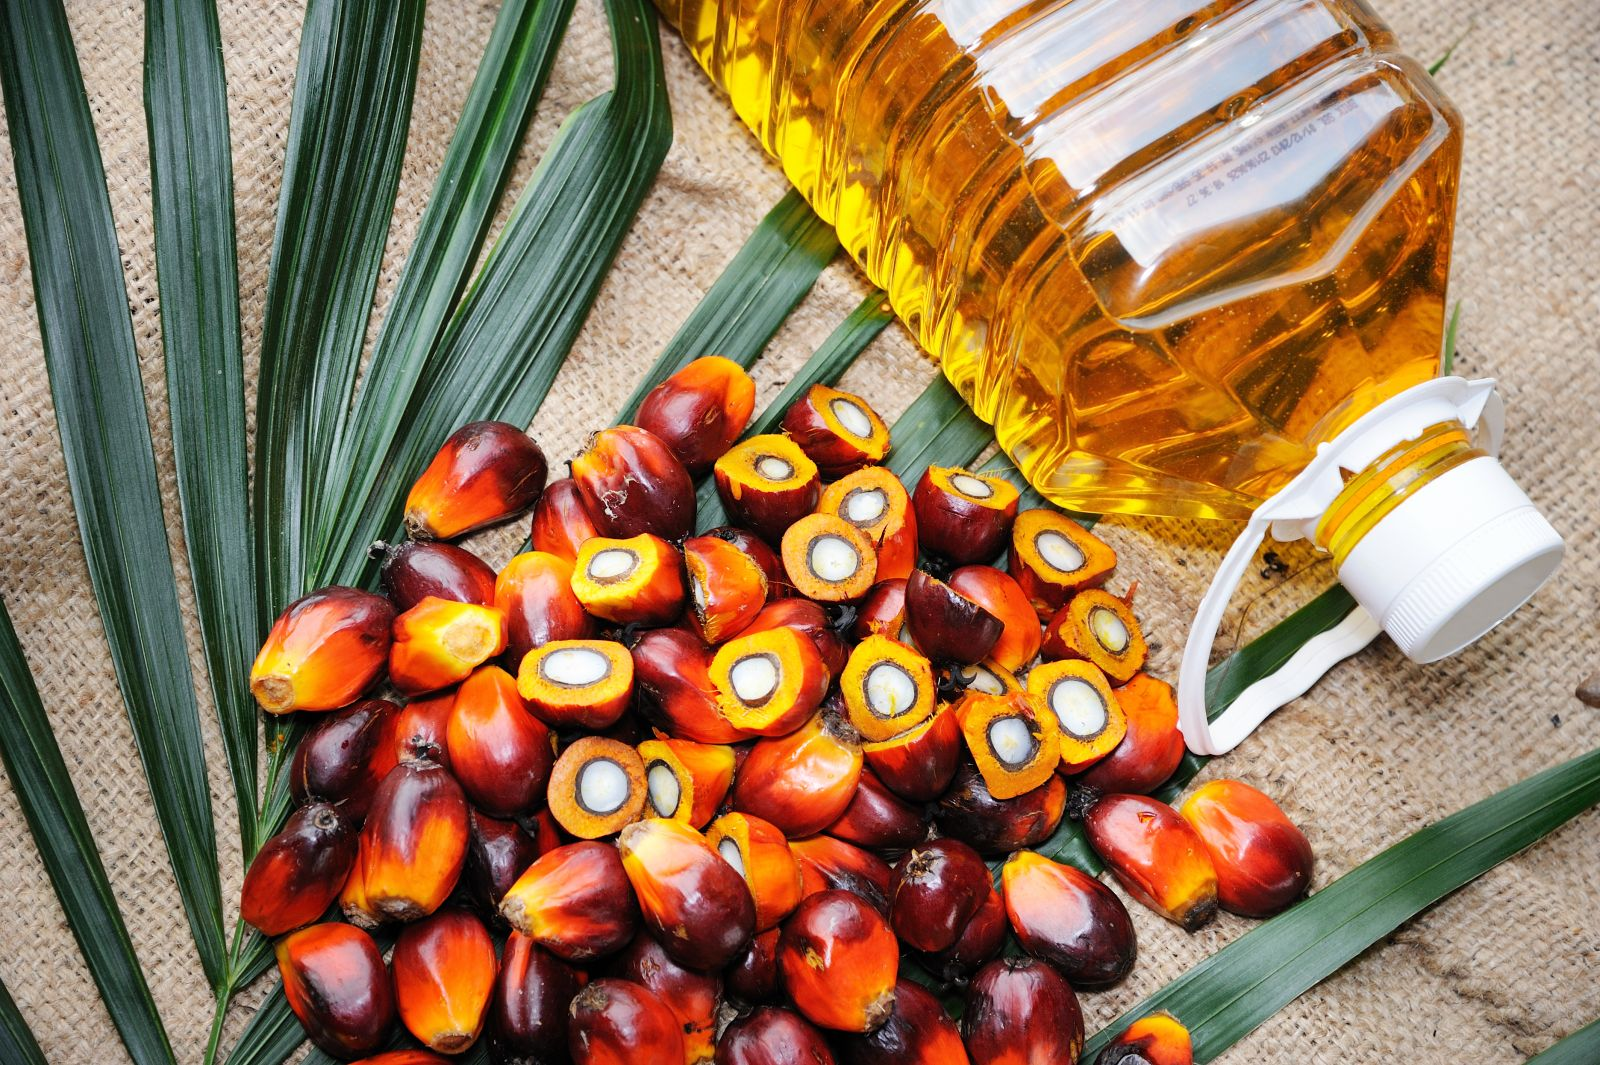 Our Qualm with Palm Oil